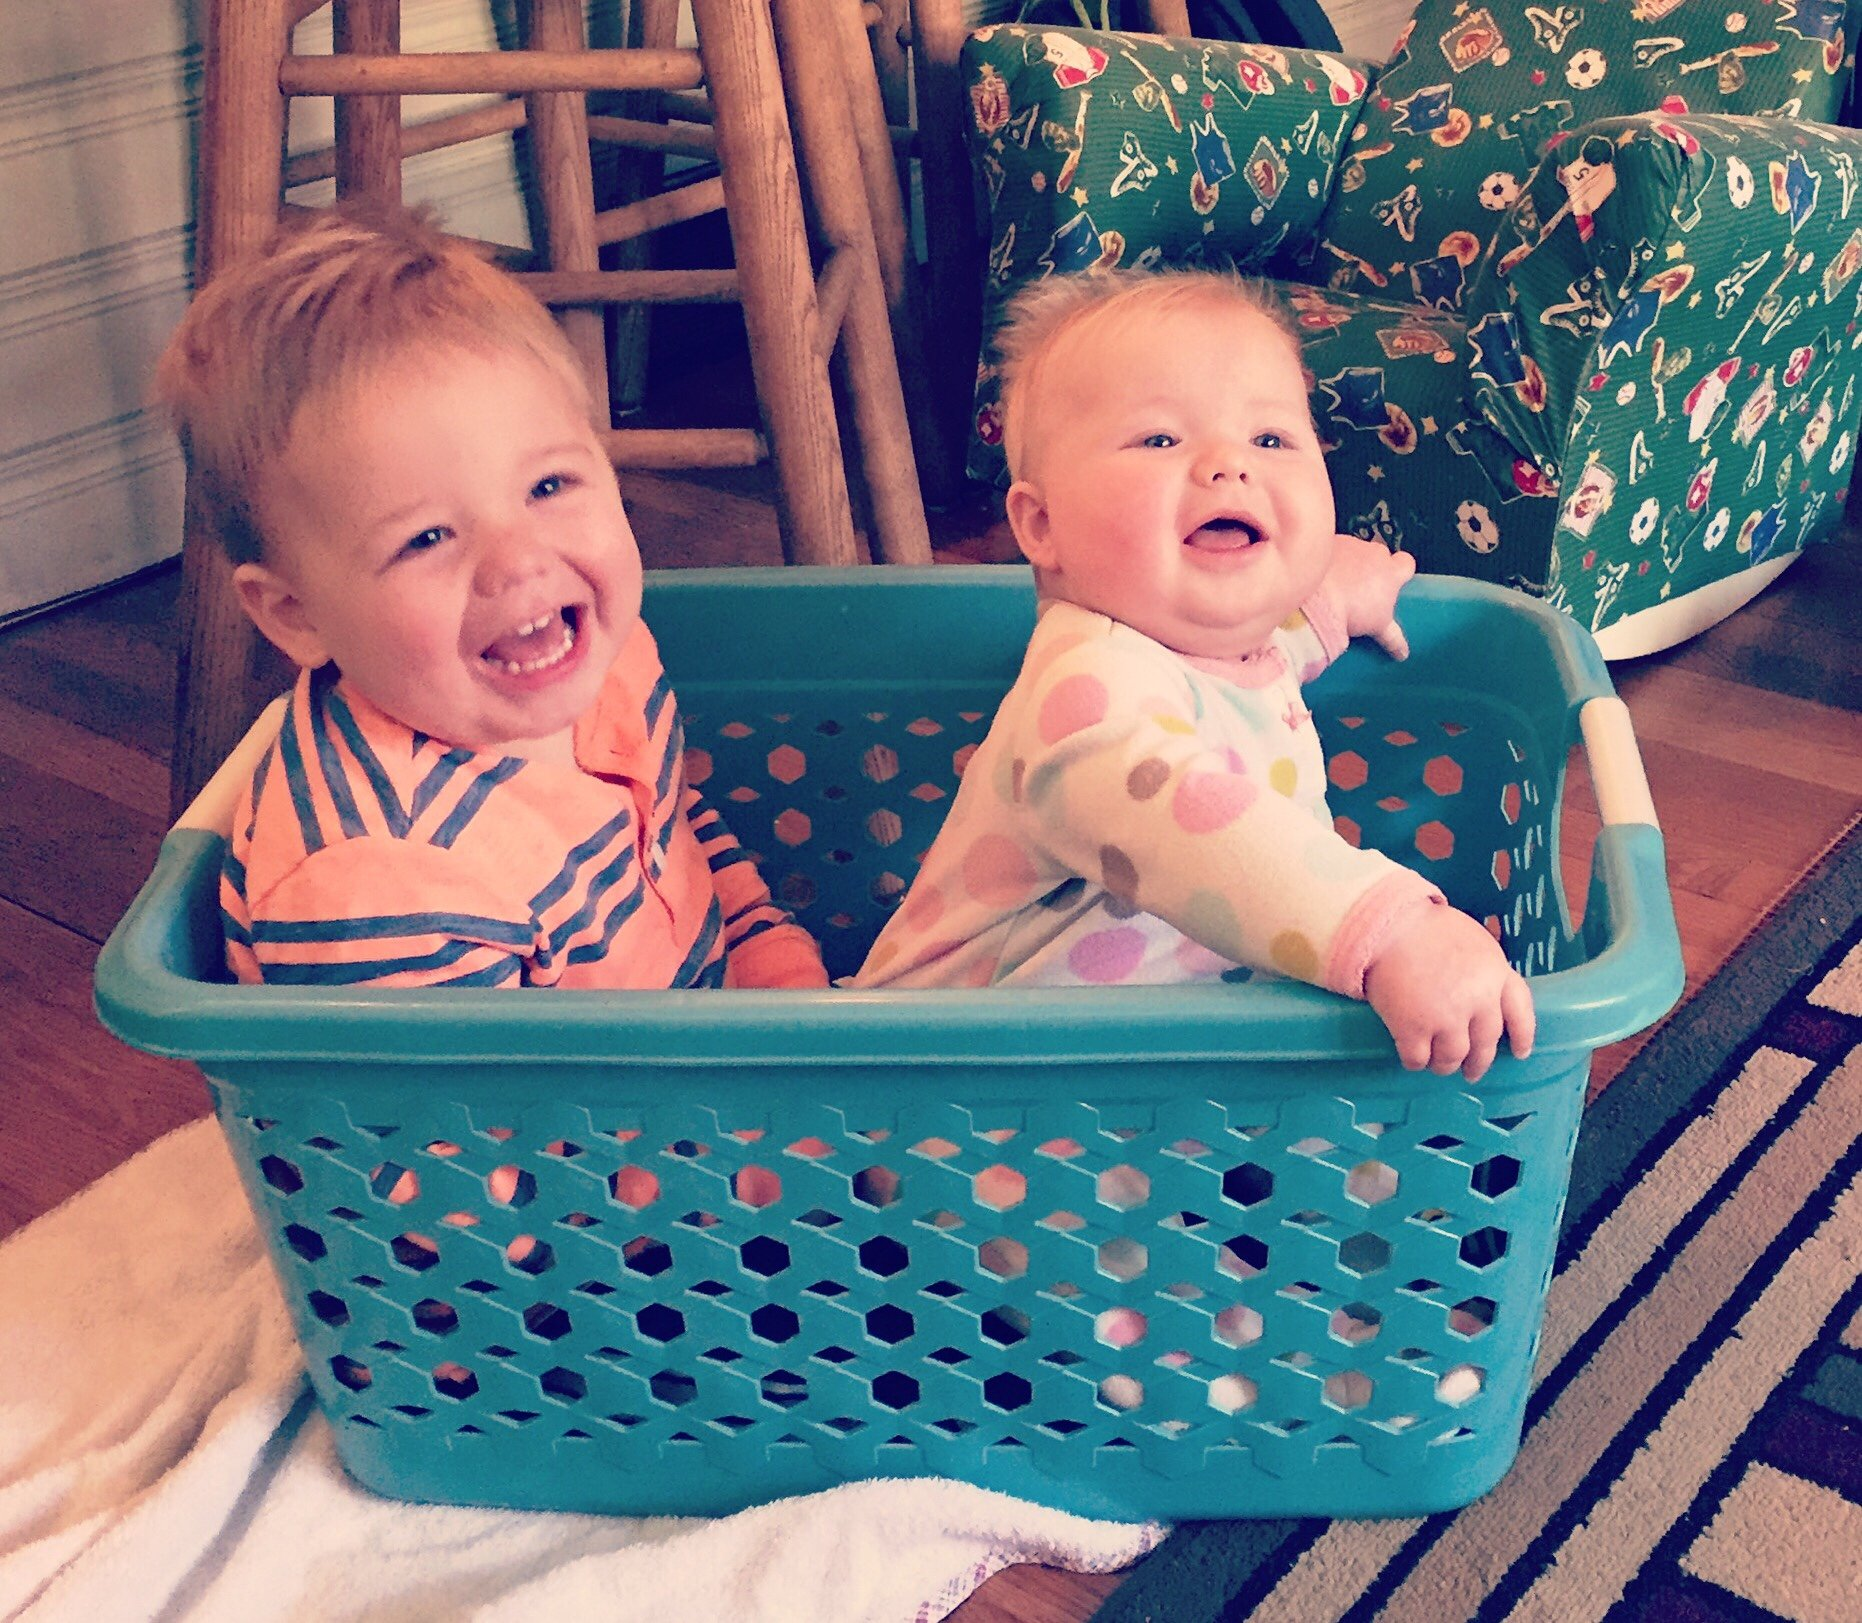 2 under 2. Toddler and baby in a laundry basket.